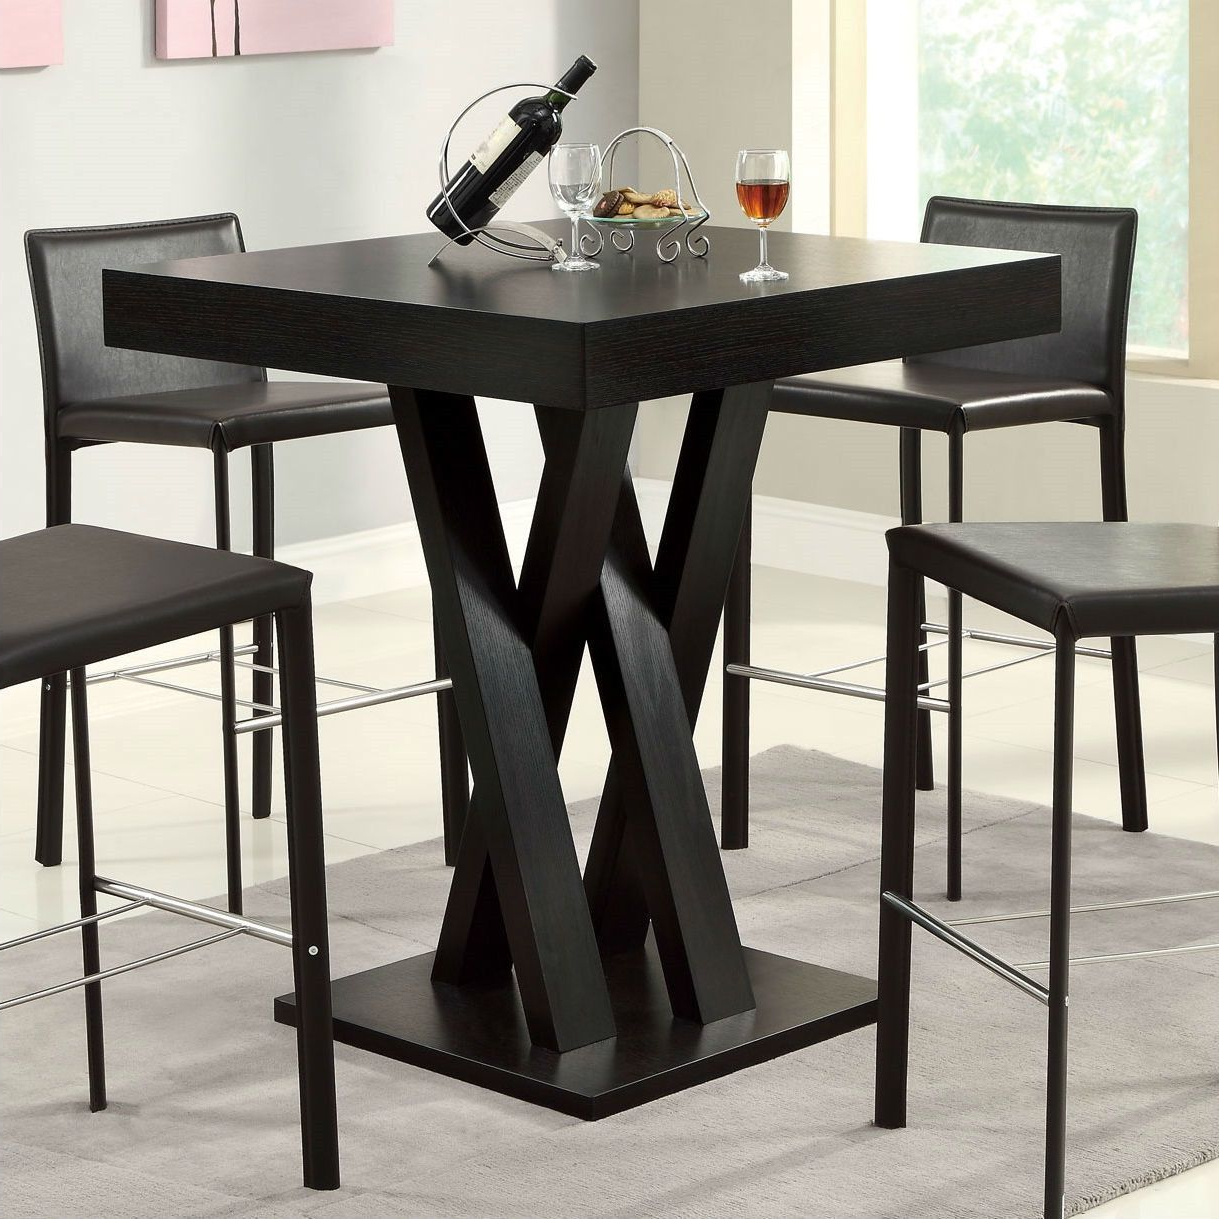 Modern 40 Inch High Square Dining Table In Dark Cappuccino With Regard To Well Liked Patio Square Bar Dining Tables (View 11 of 30)